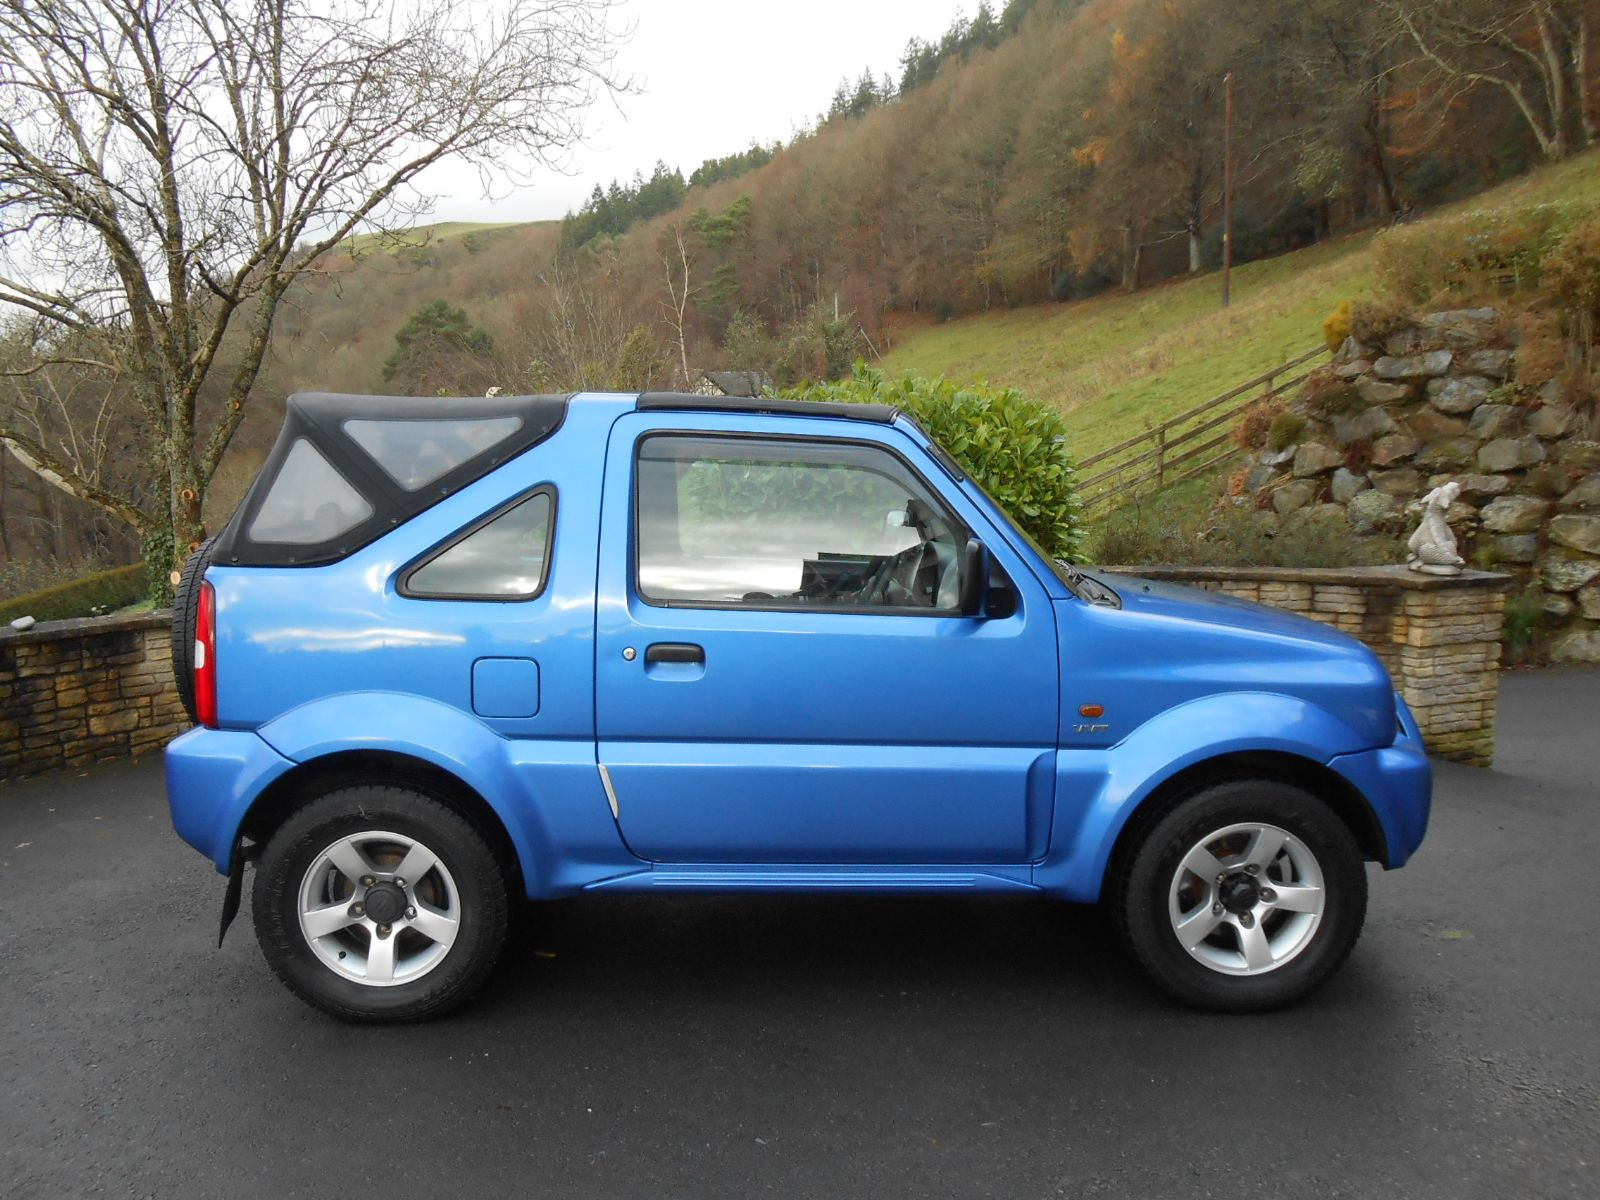 suzuki jimny convertible 1 3 vvts 4wd car for sale llanidloes powys mid wales kevin jones cars. Black Bedroom Furniture Sets. Home Design Ideas